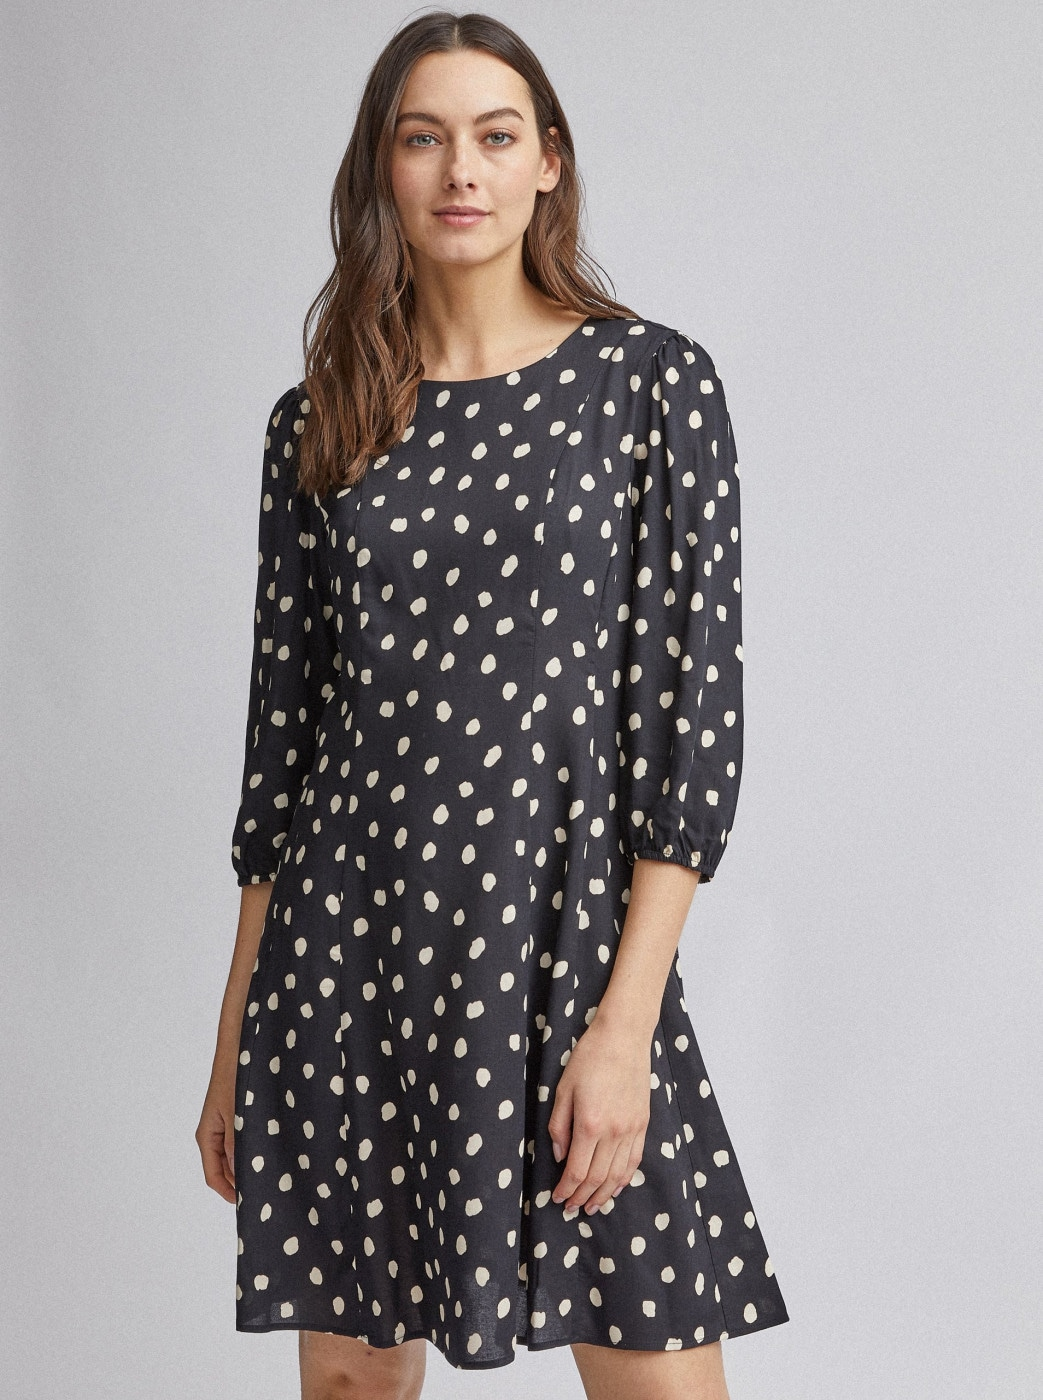 Black dotted dress by Dorothy Perkins